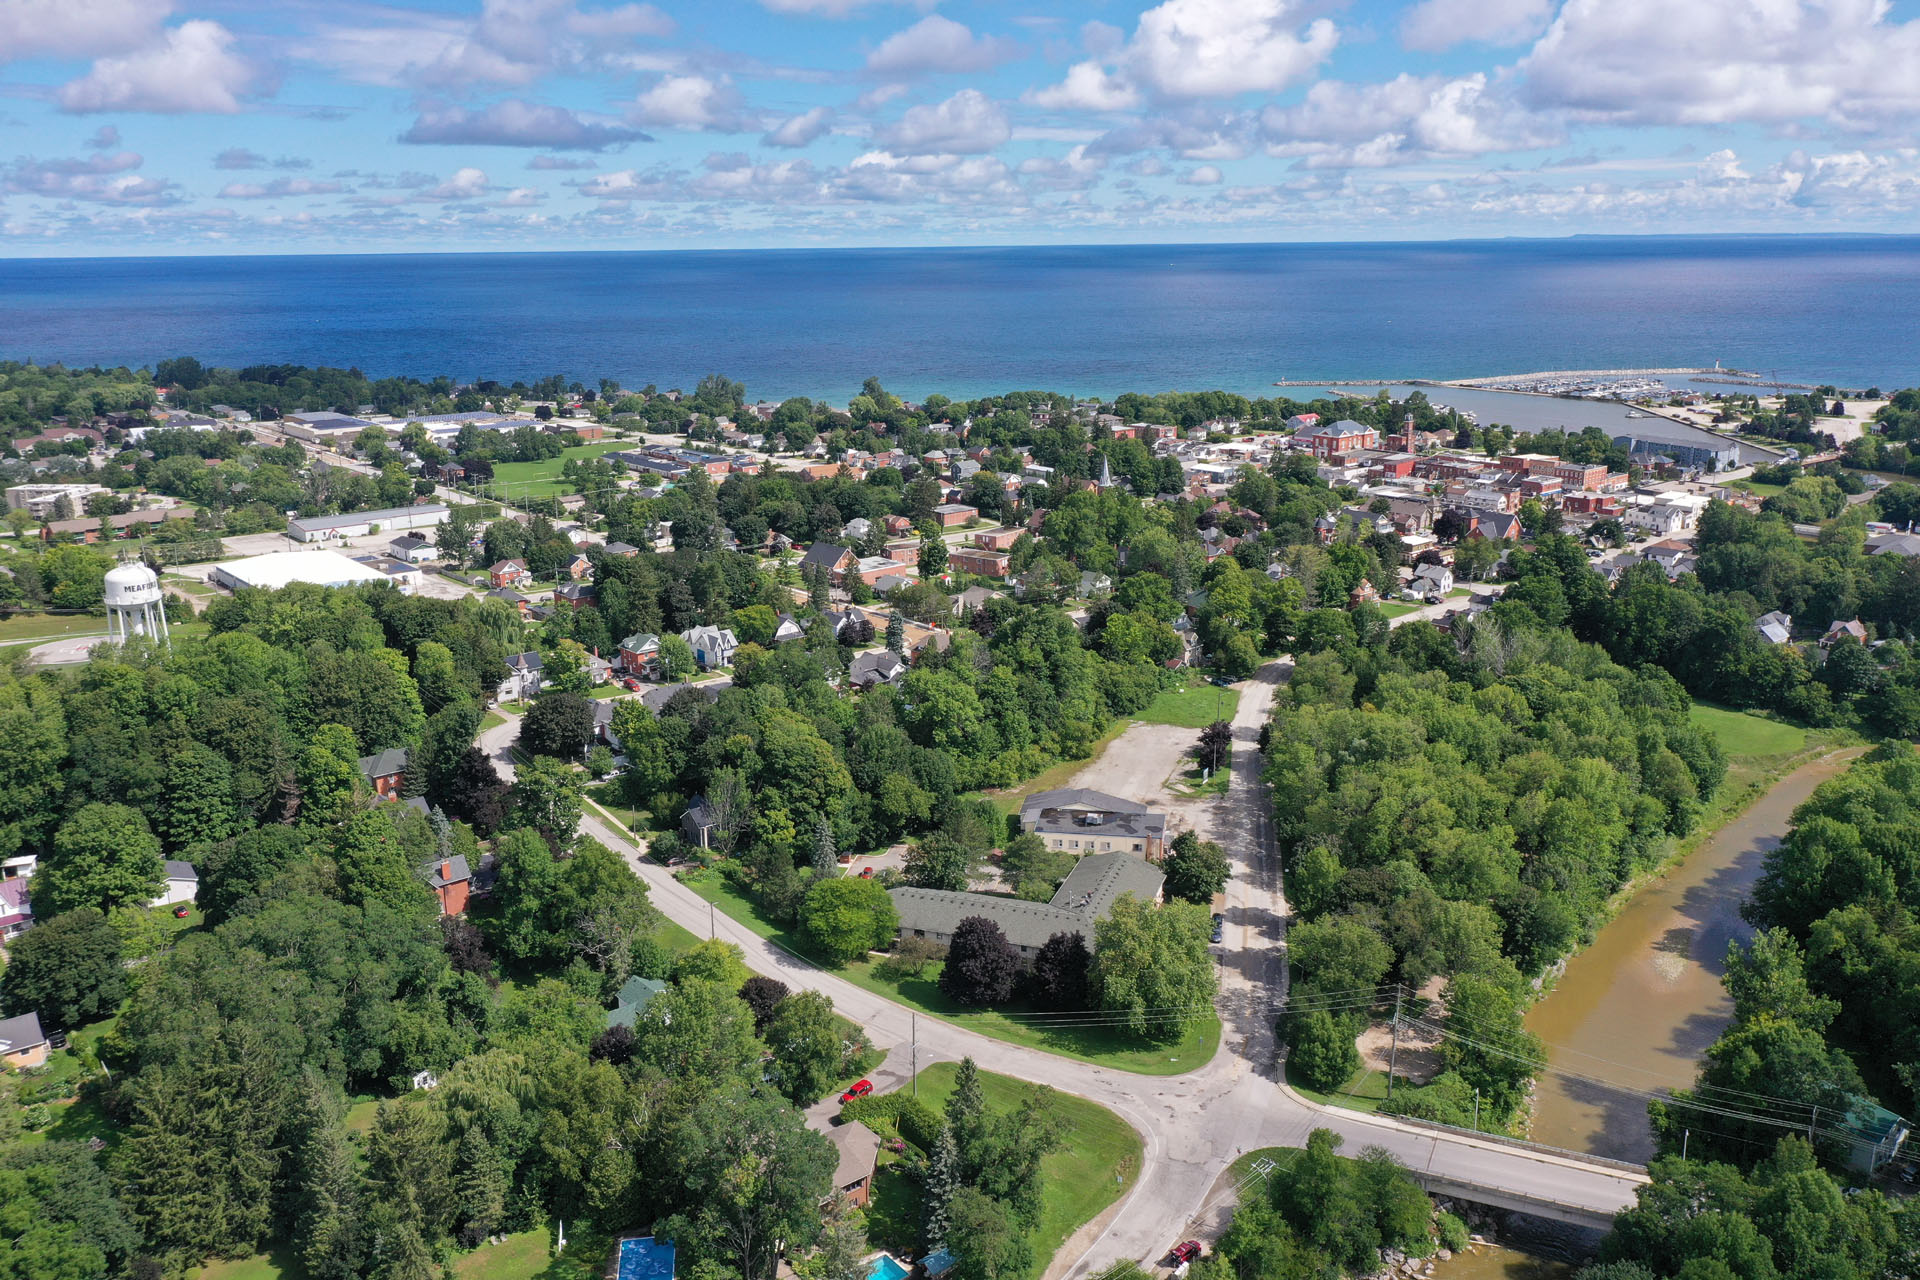 Aerial View of Meaford